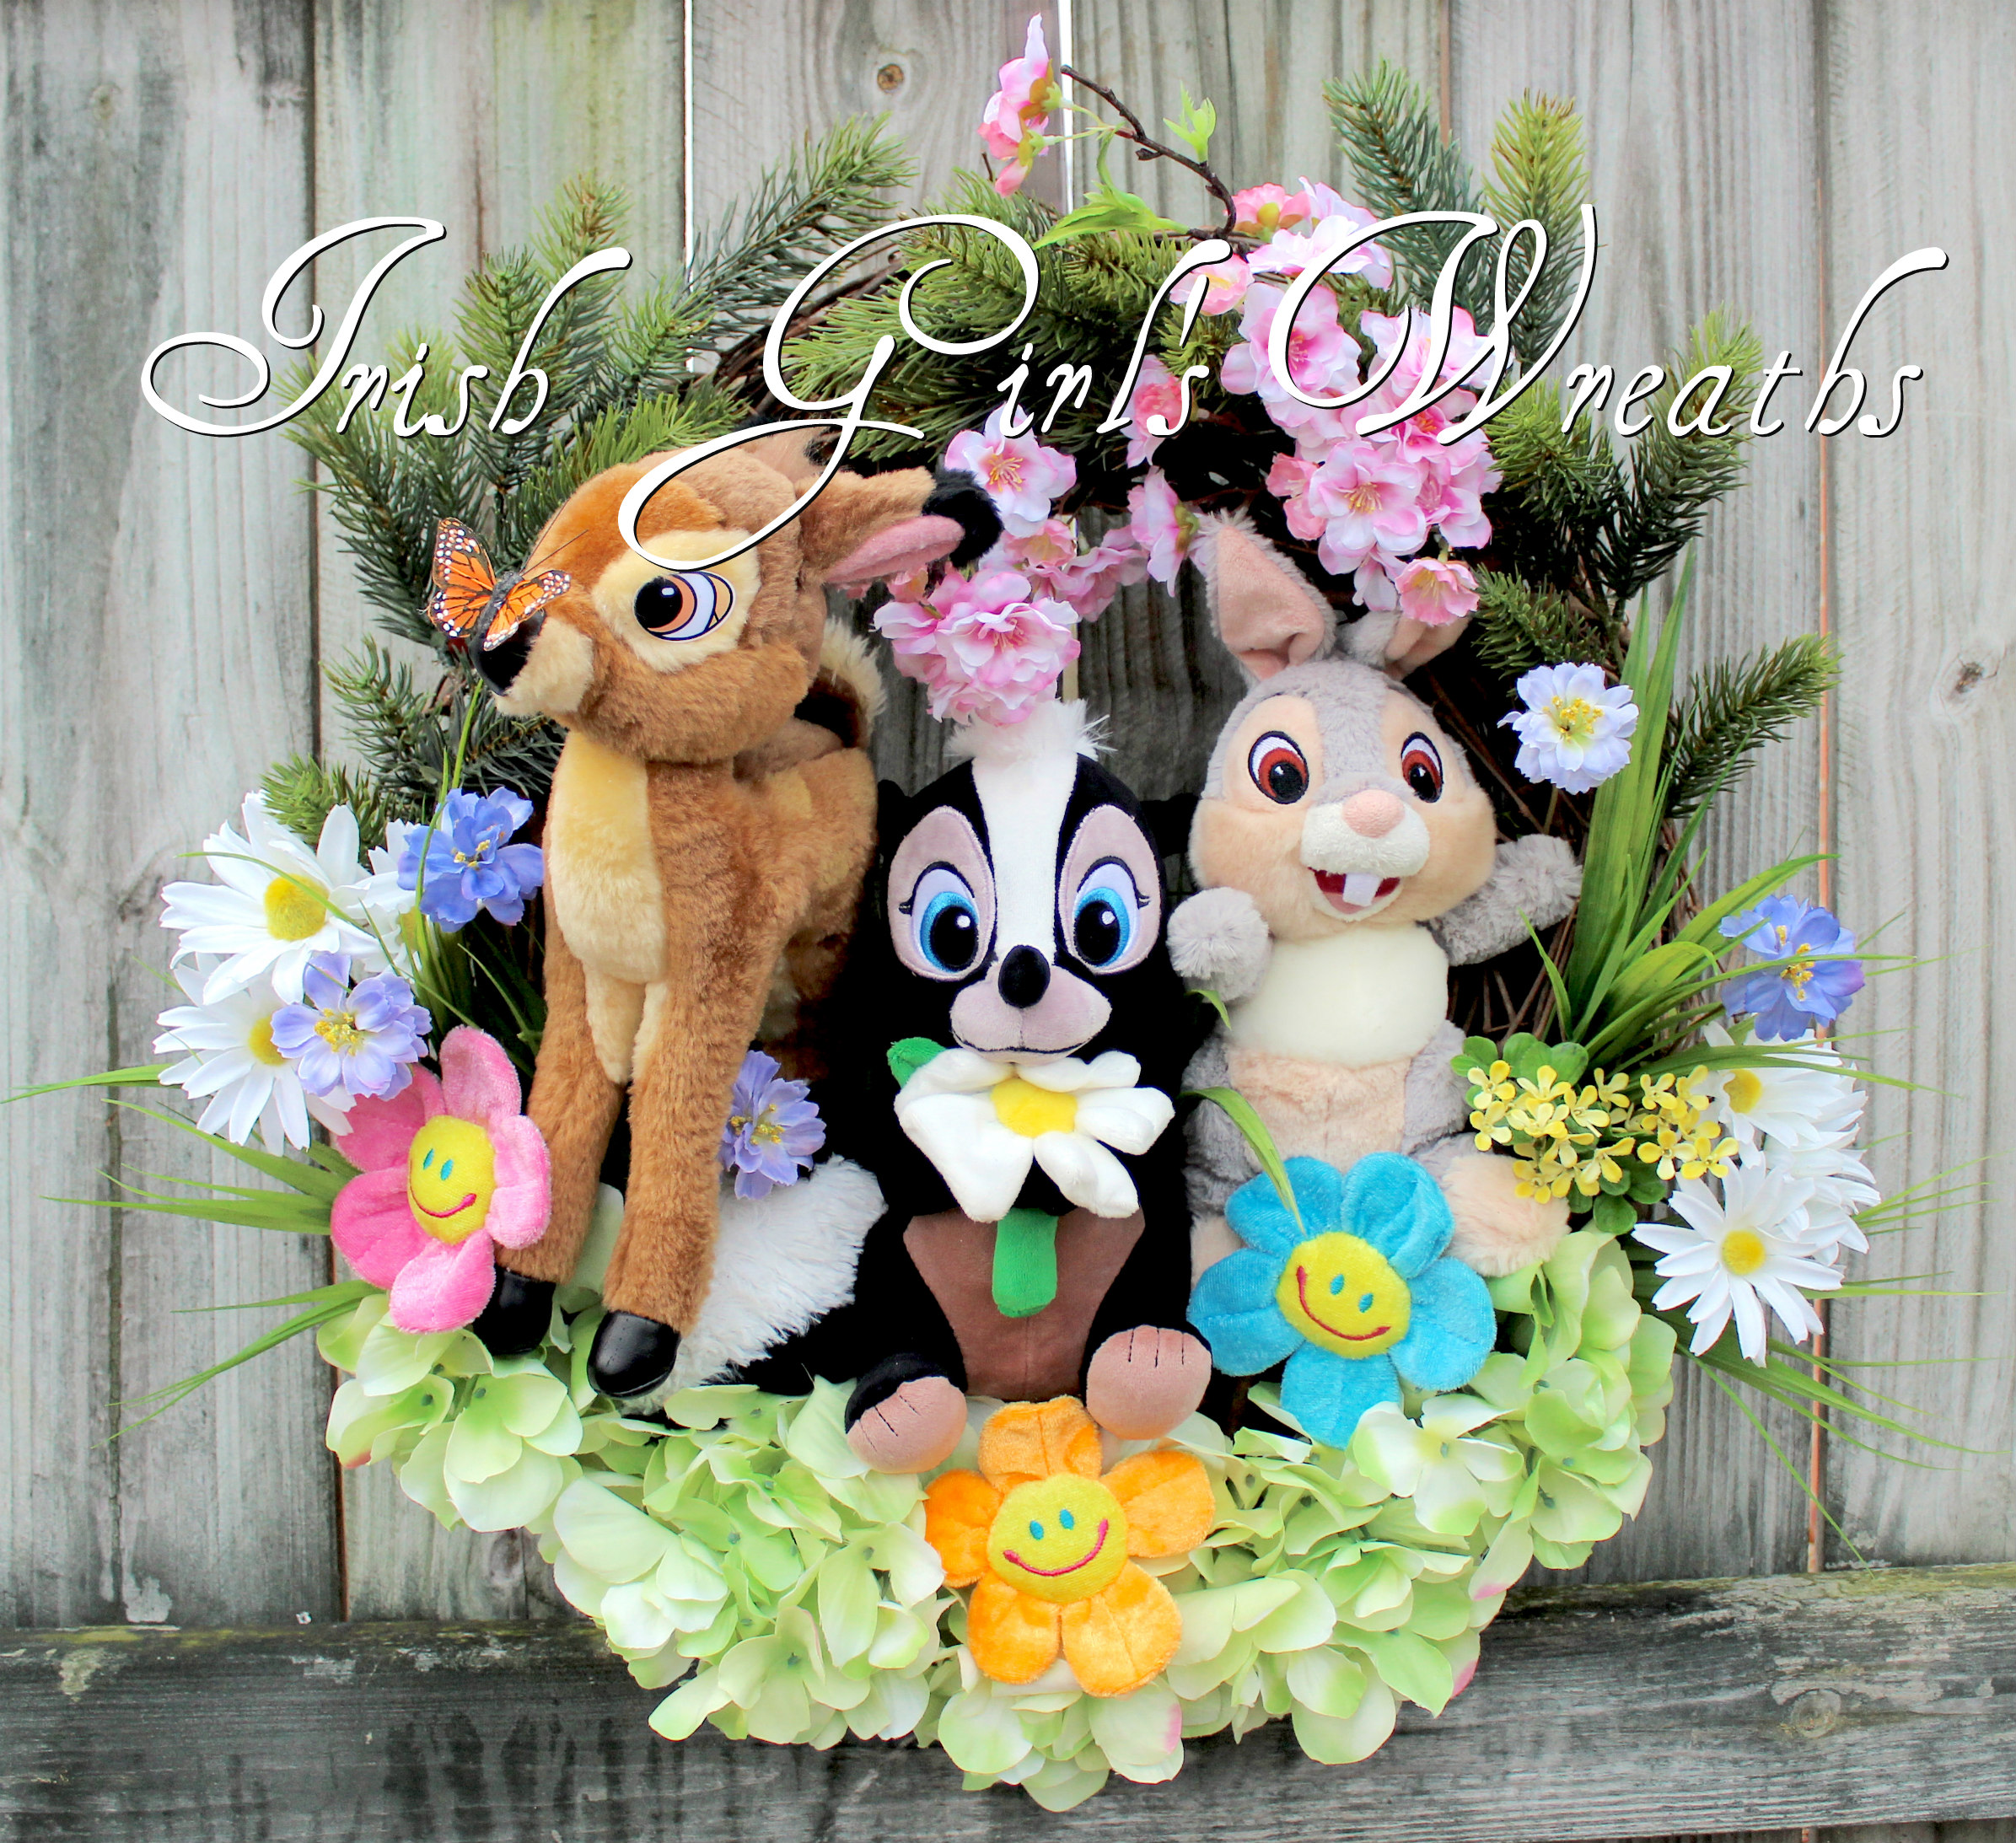 Bambi and Friends Springtime Wreath, Disney Bambi Thumper and Flower the Skunk Nursery Wreath